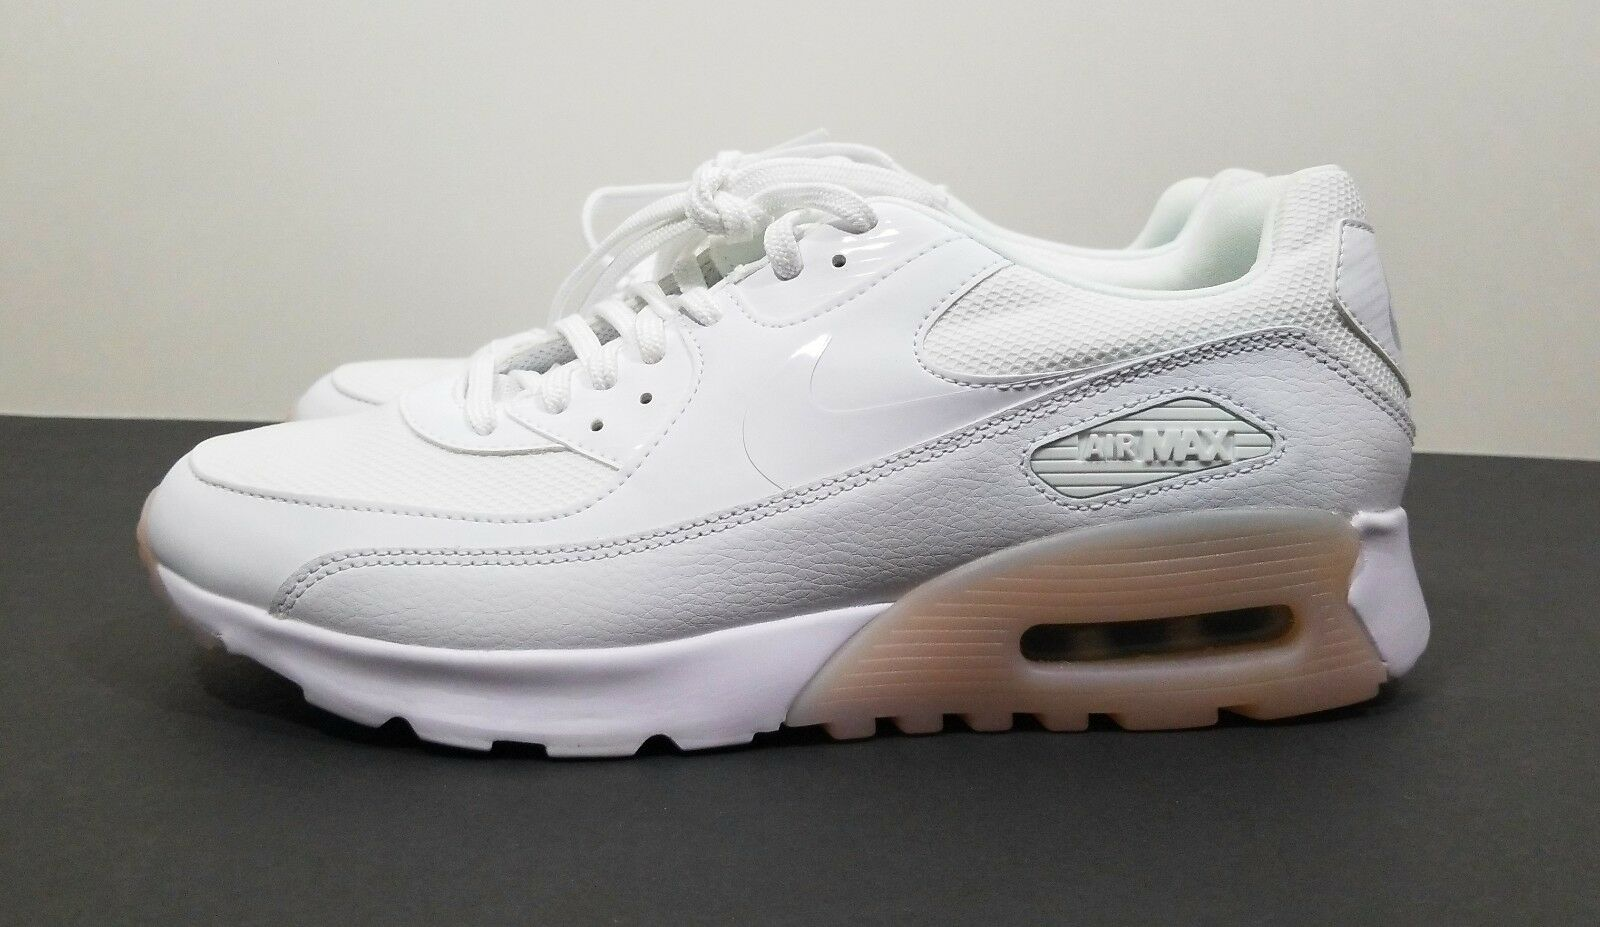 Nike Air Max 90 Ultra Essential Womens Running shoes White Size 9.5